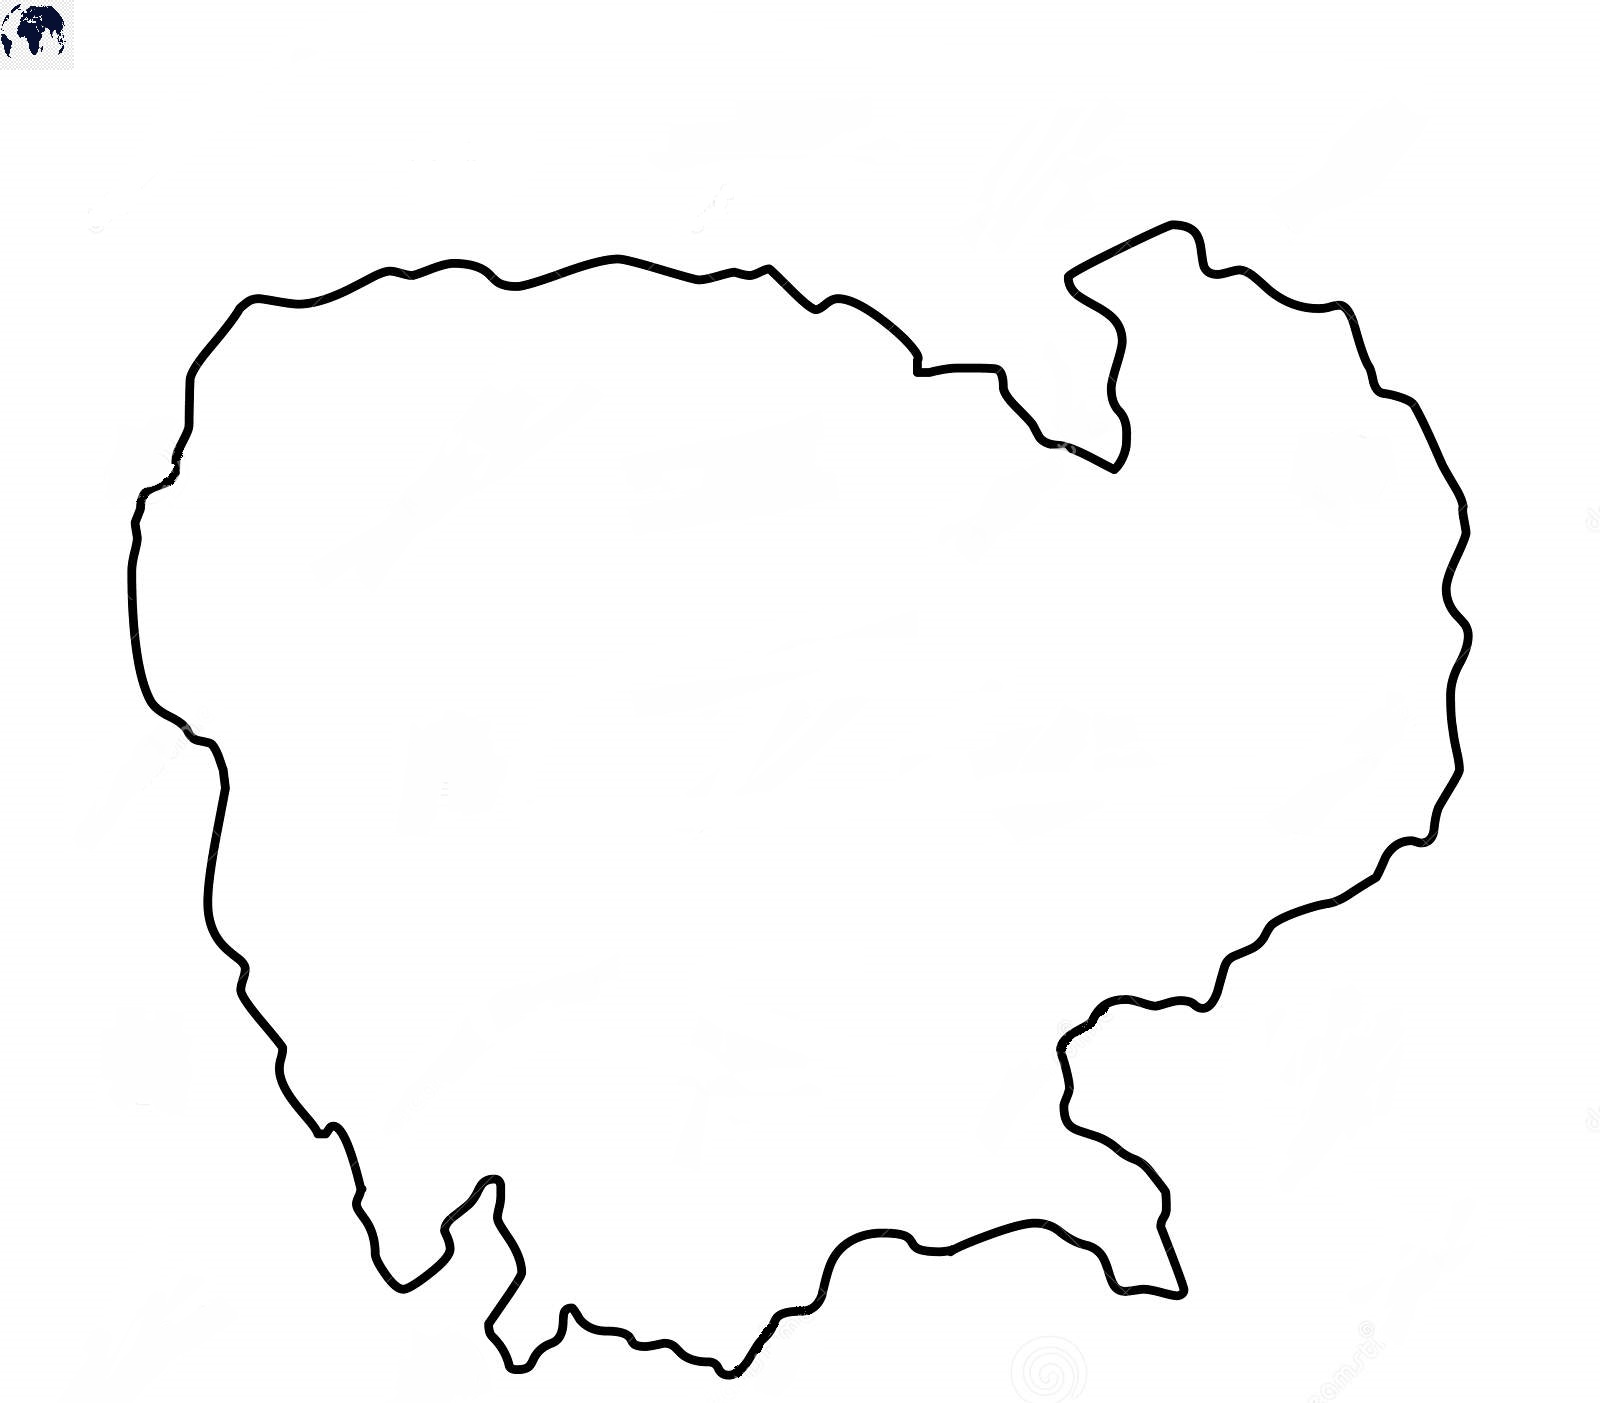 Blank Map of Cambodia - Outline